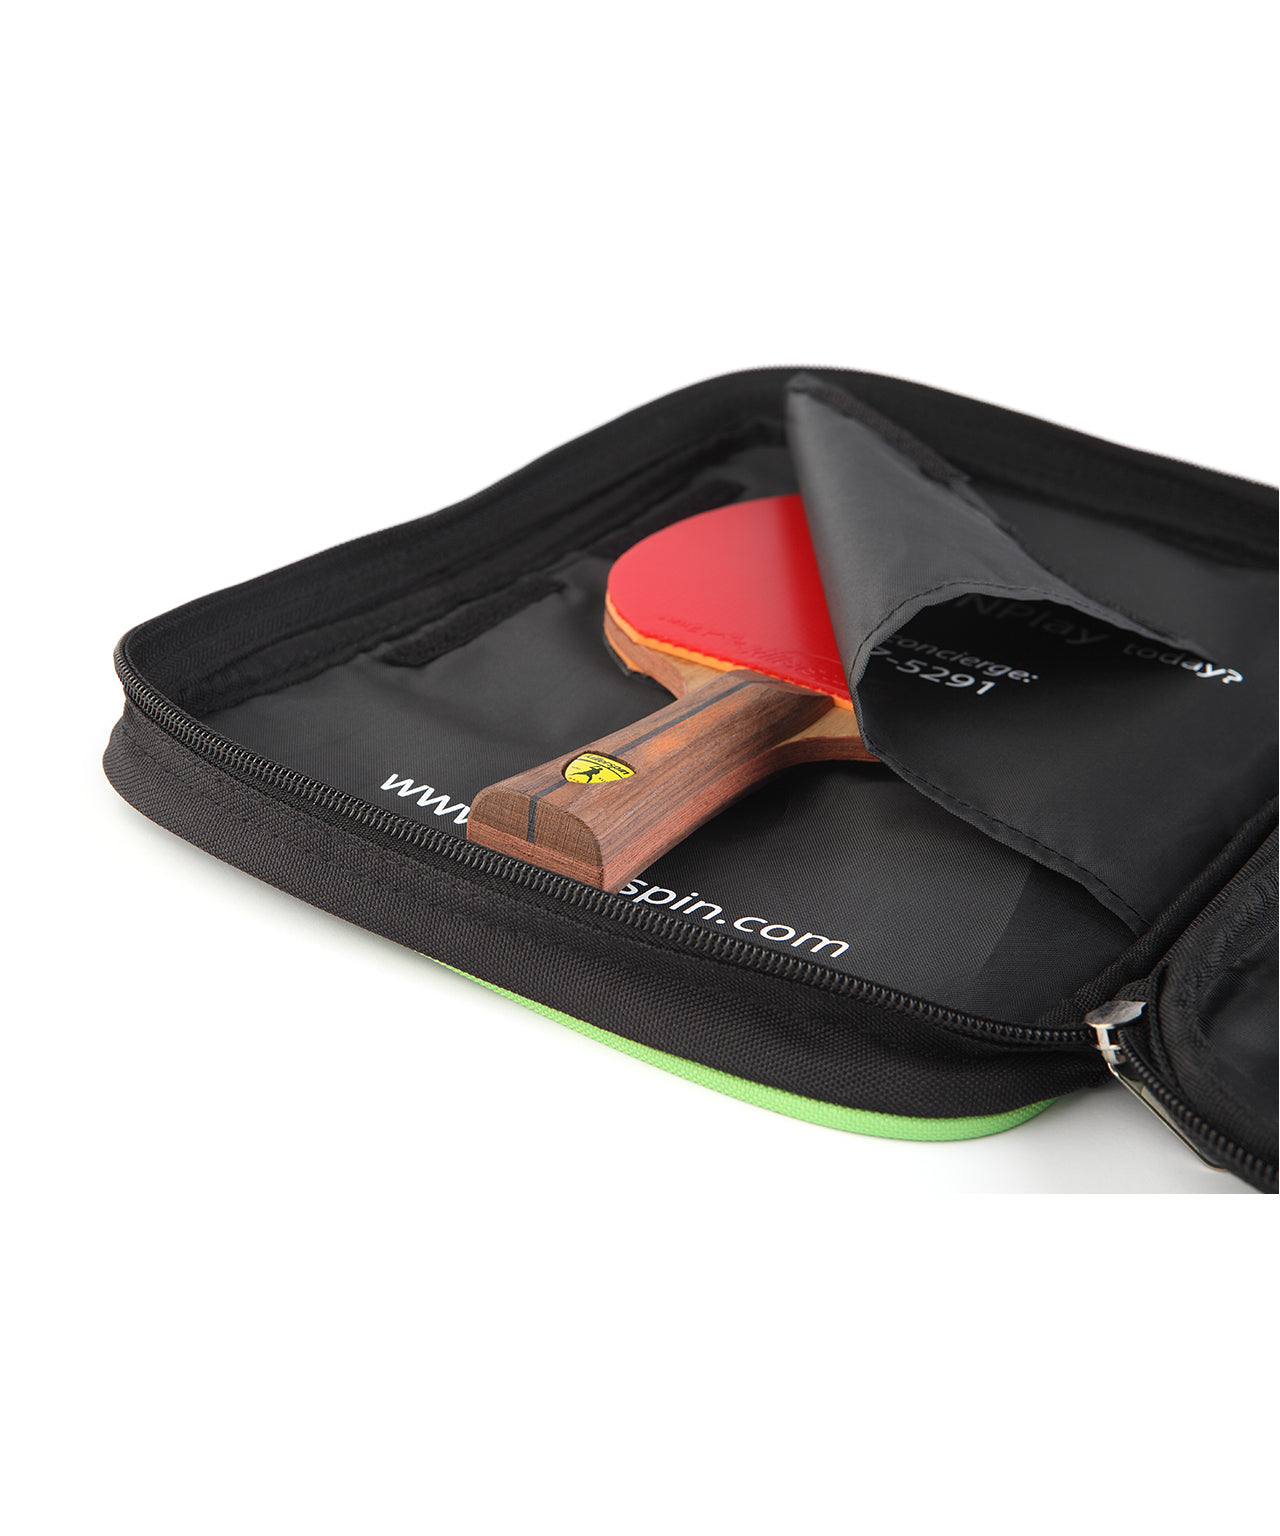 Killerspin Optima Ping Pong Paddle Case Paddle Package